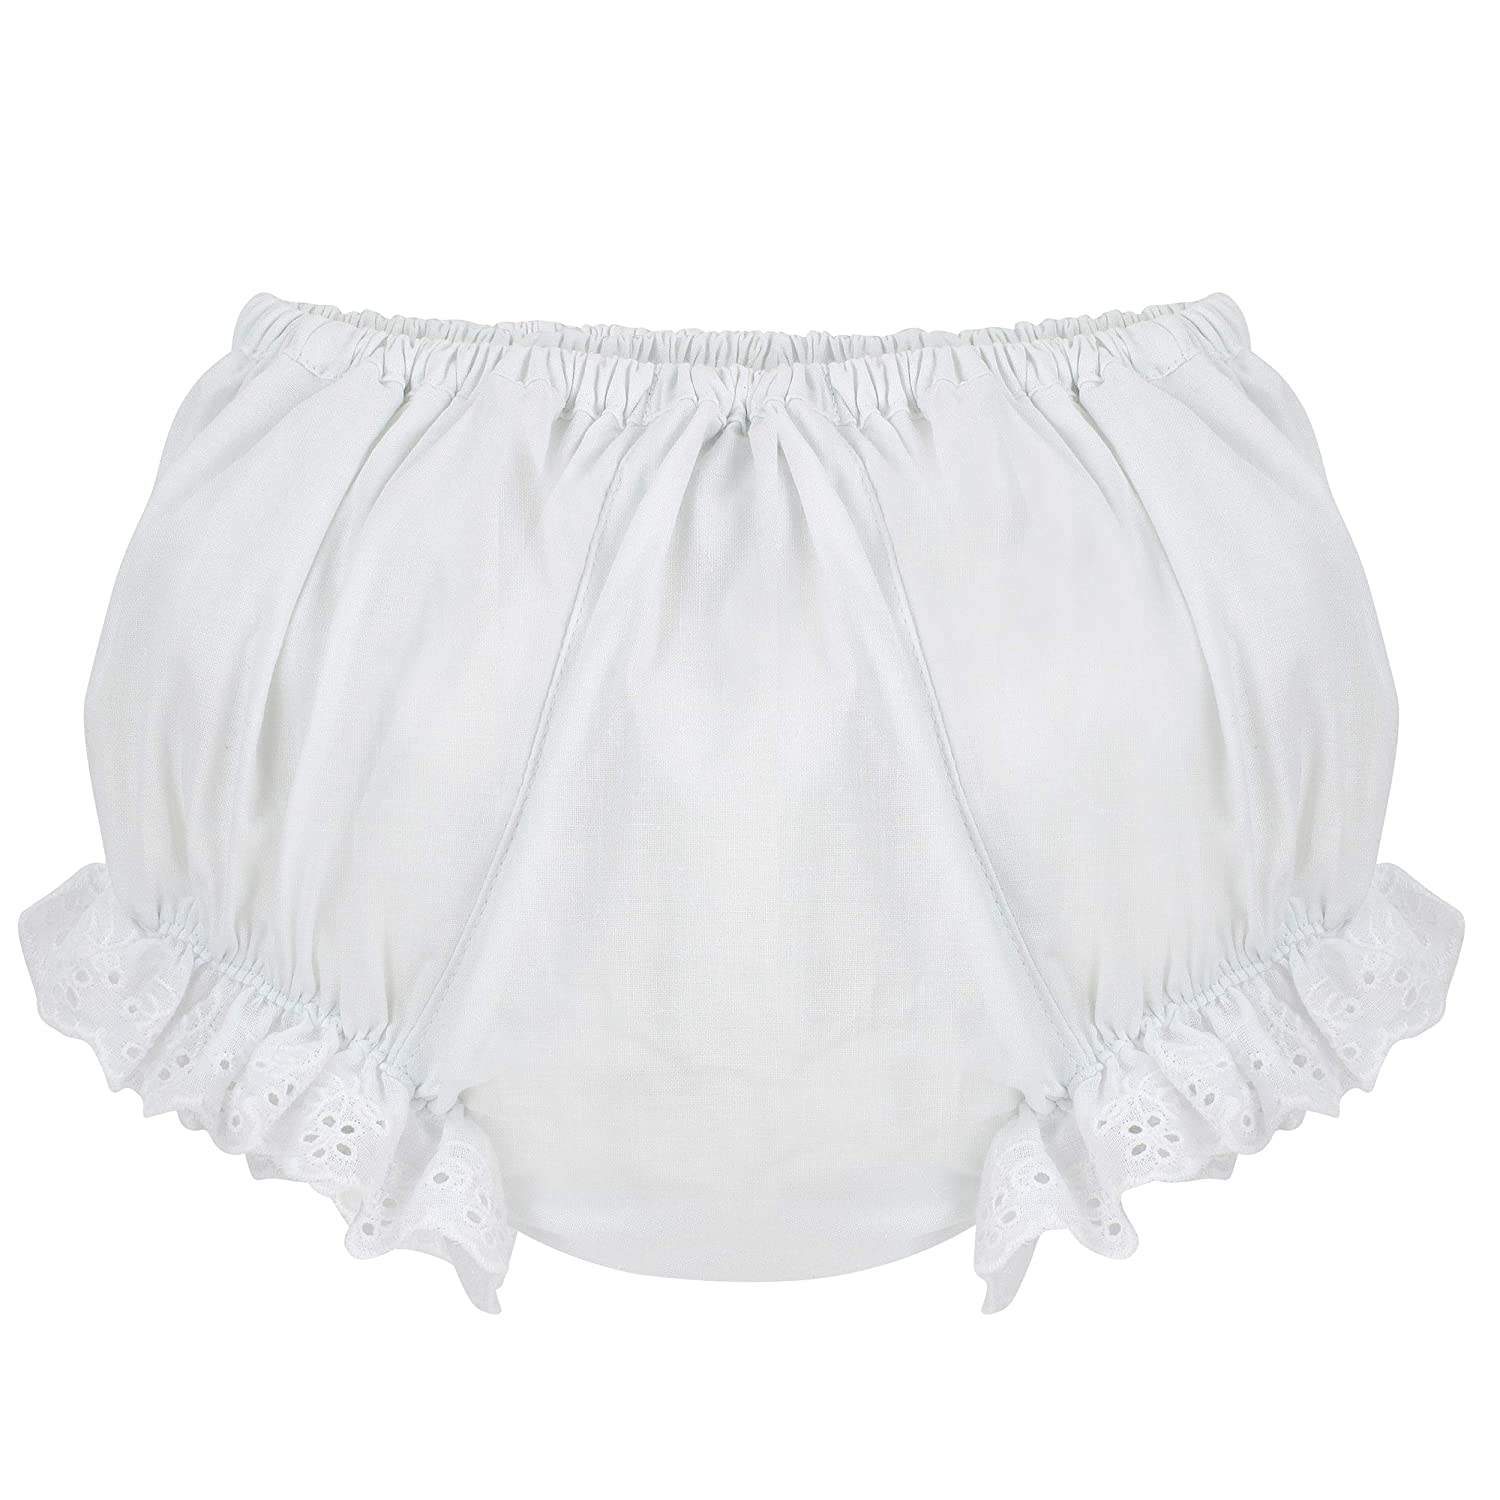 Ruffled White Flowers Carriage Boutique Baby Girls Cotton Panty Diaper Covers